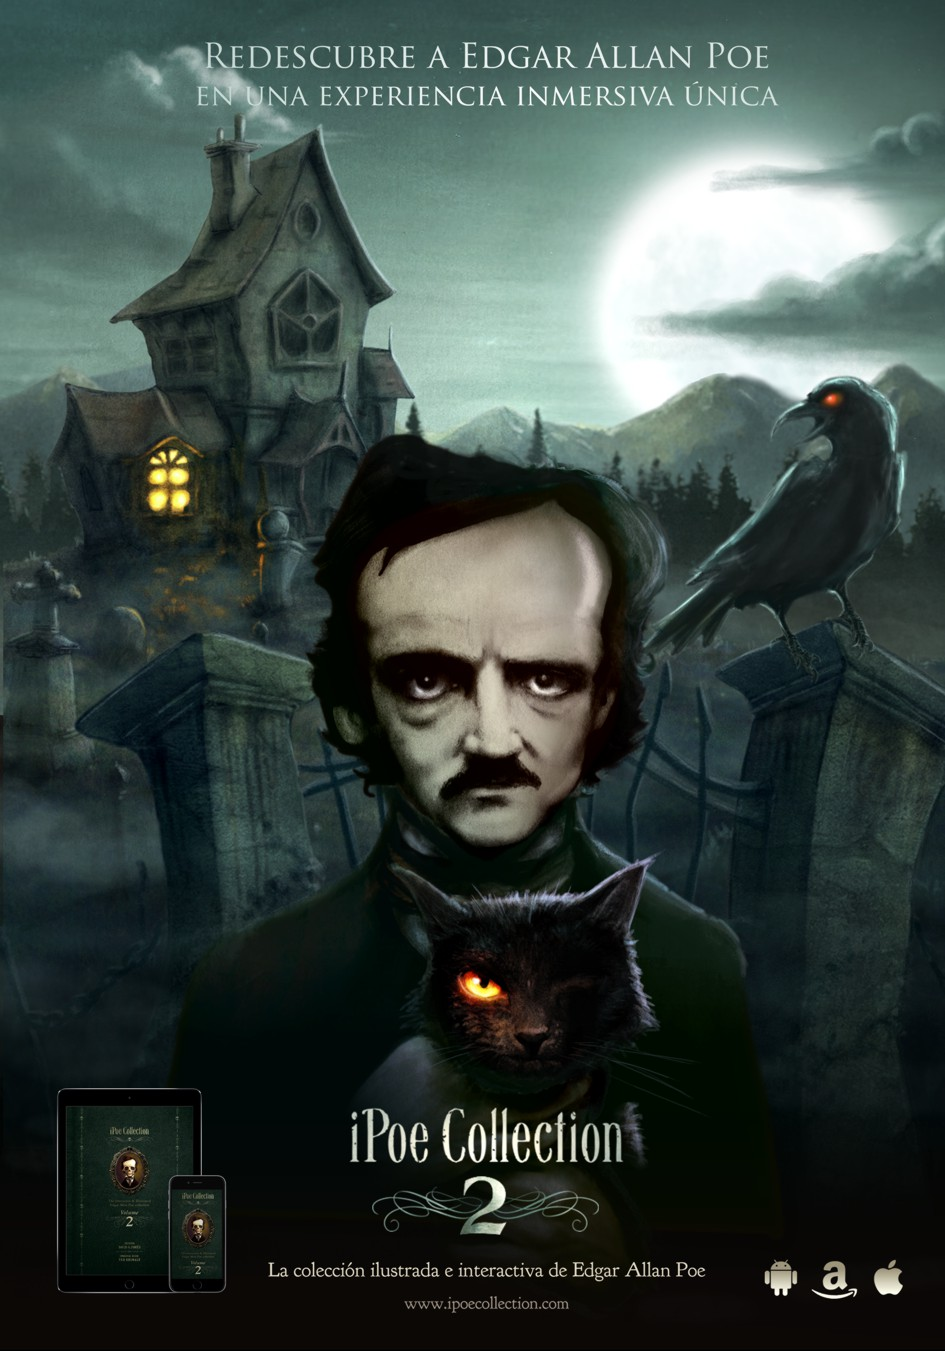 iPoe collection vol2: El Cuervo, El Gato Negro y Hop-Frog